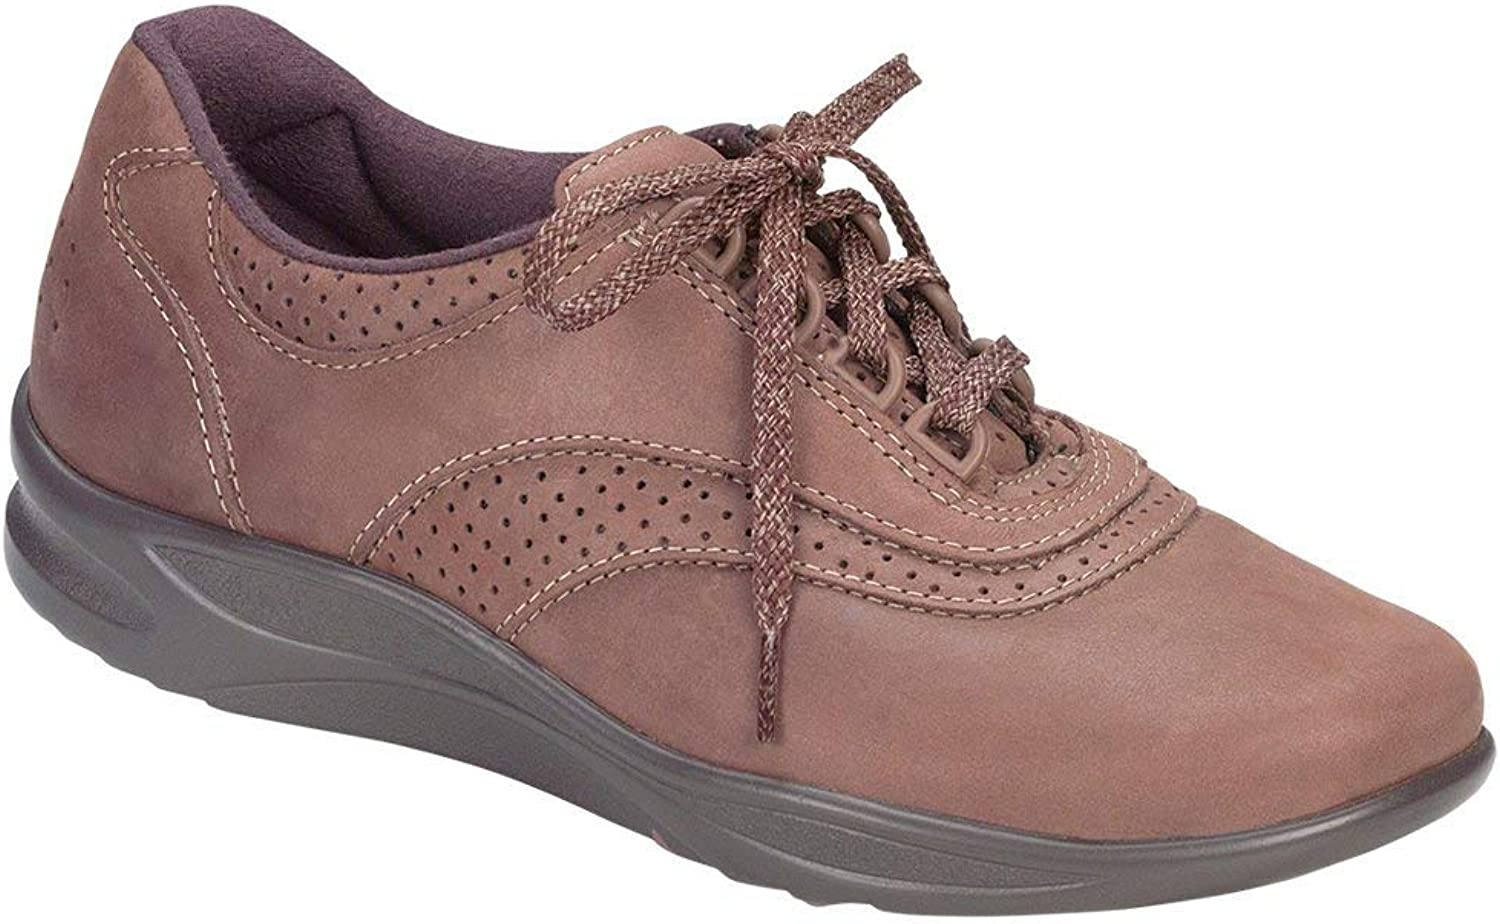 SAS Woherrar Walk Easy Chocolate Nubuck 9 N - Narrow (AA) USA